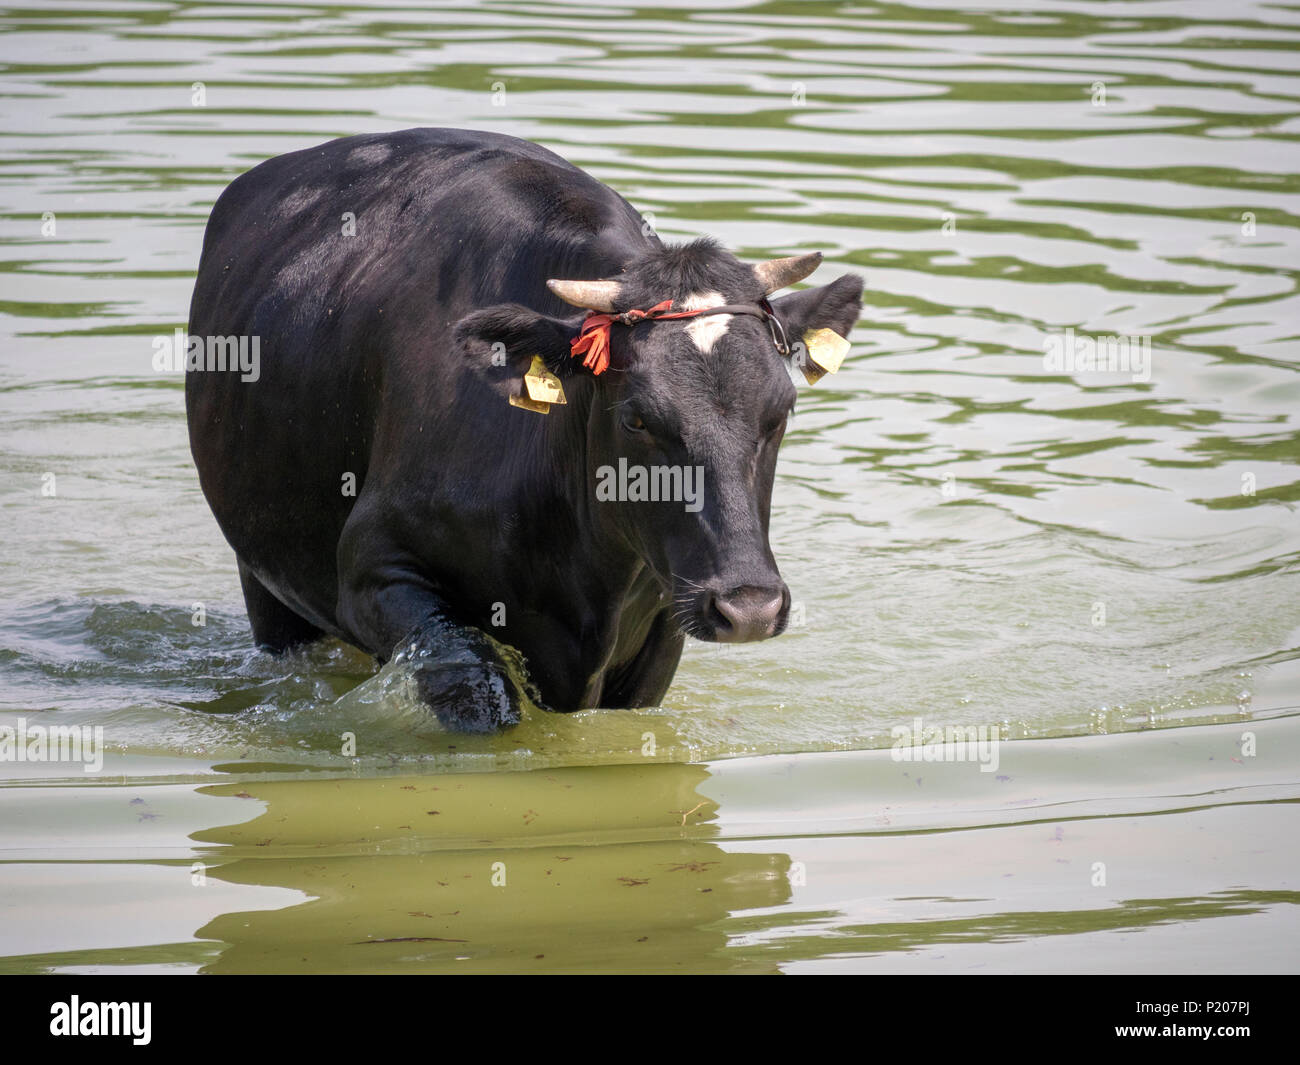 Cows resting in water on a hot sunny day - Stock Image